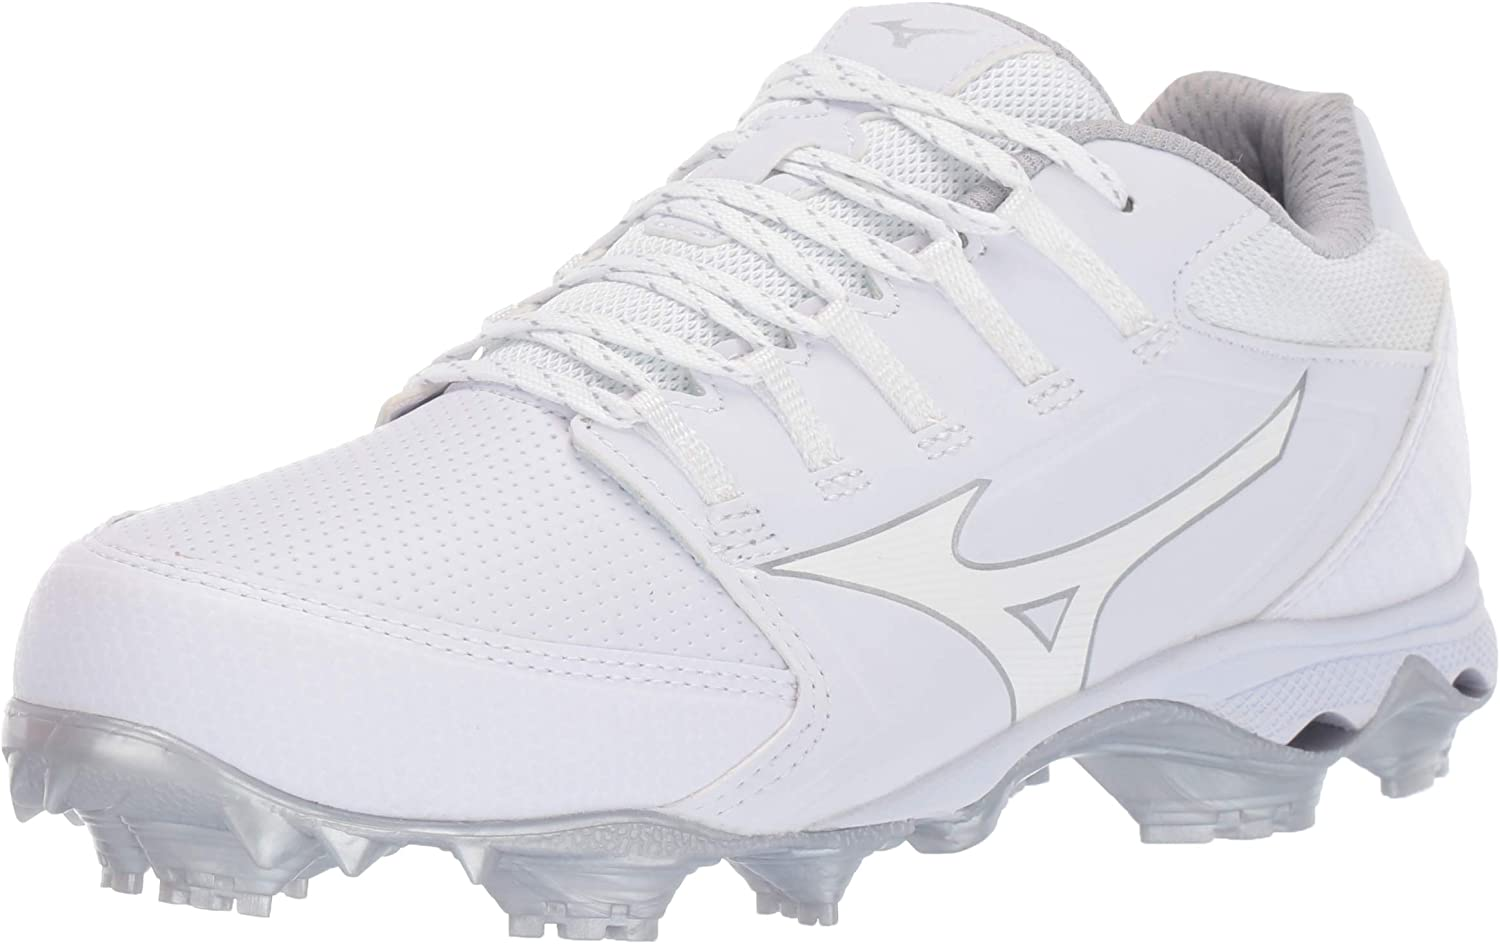 Mizuno Women's 9-Spike Advanced Finch Elite 4 TPU Molded Cleat Athletic Shoe